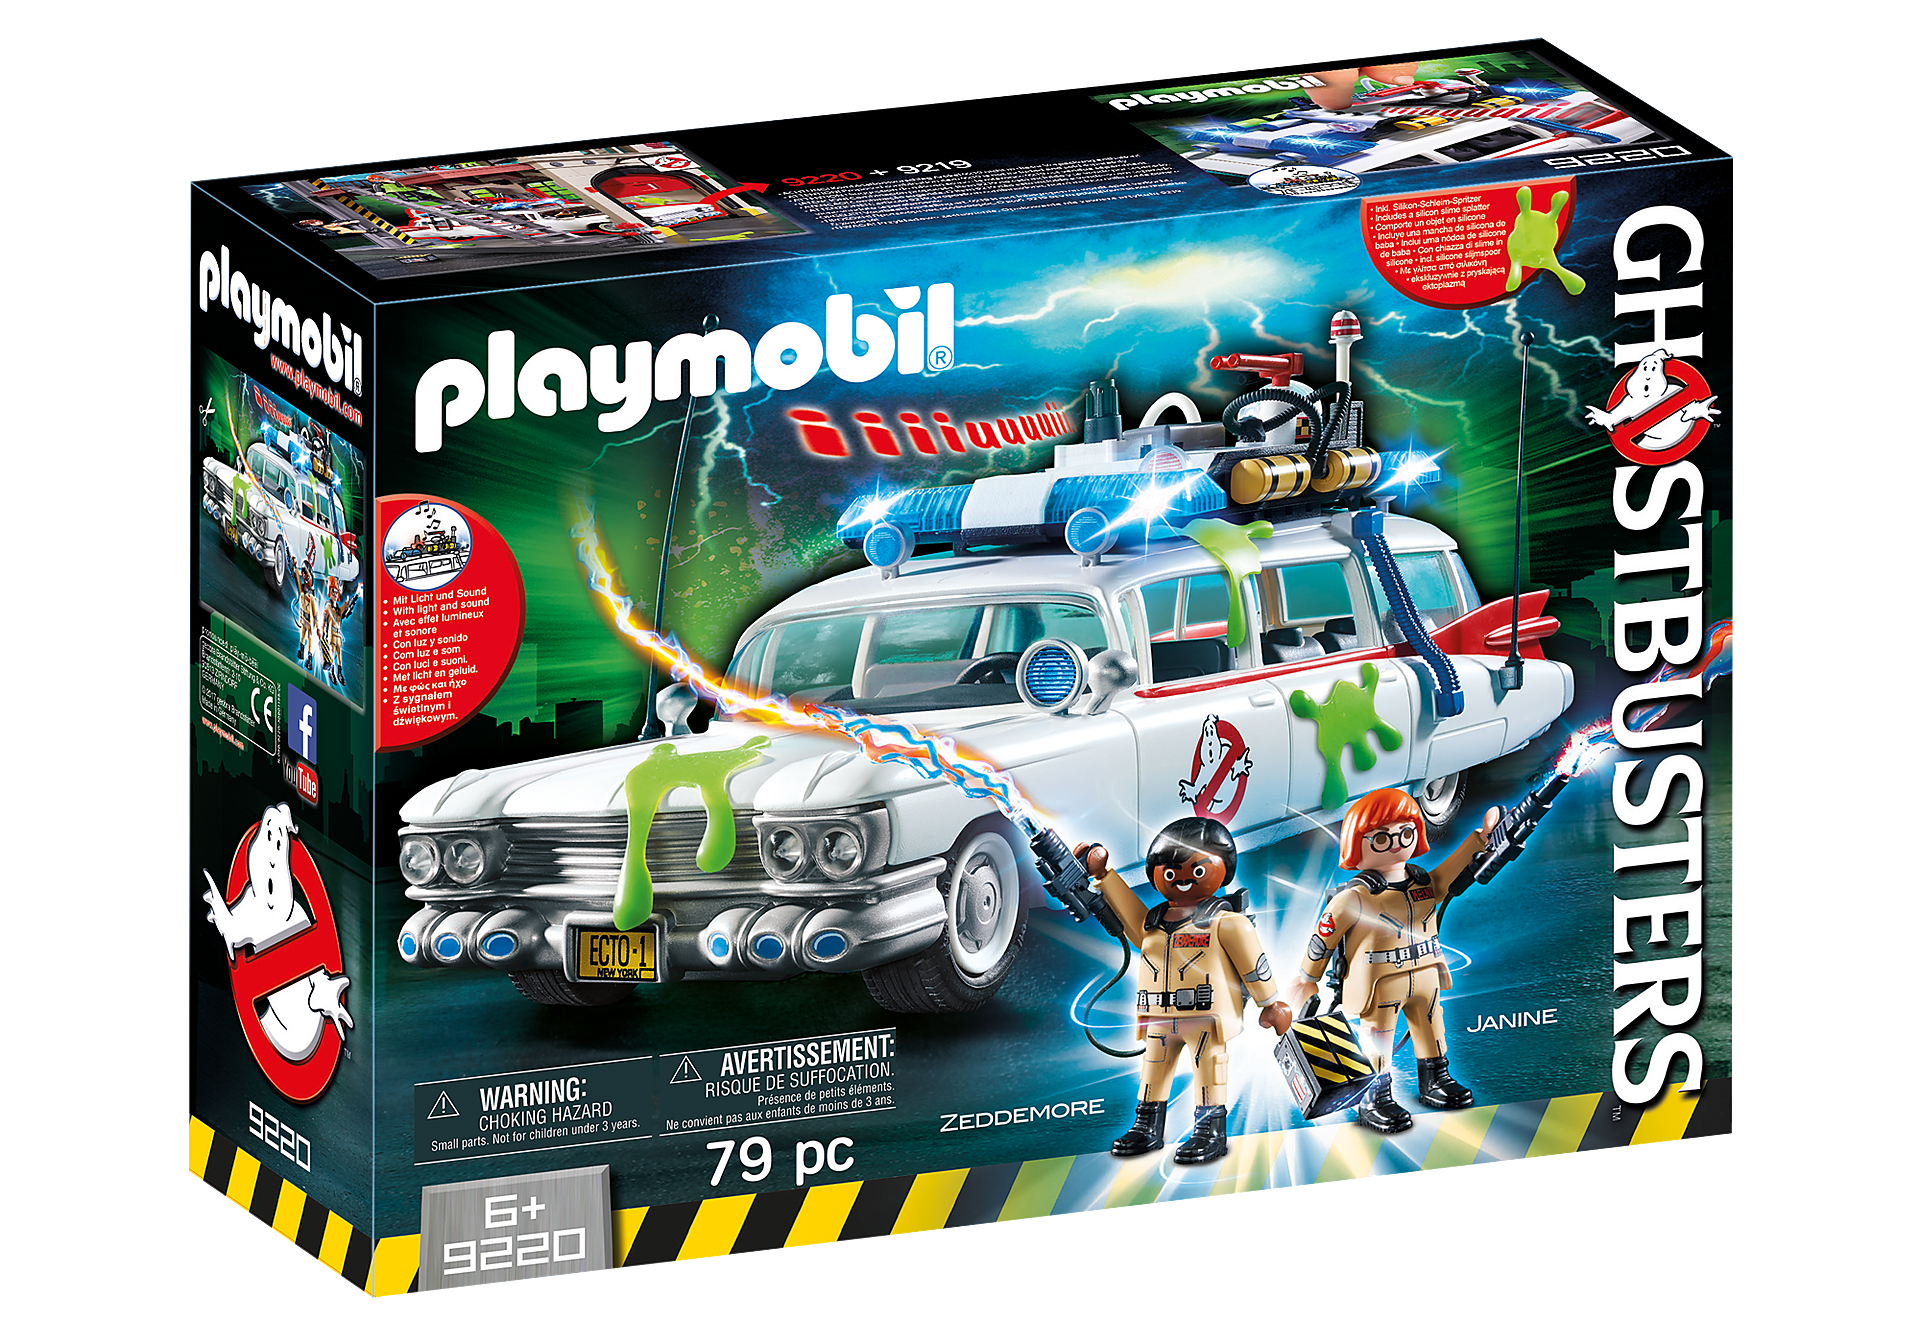 http://media.playmobil.com/i/playmobil/9220_product_box_front/Ghostbusters™ Ecto-1